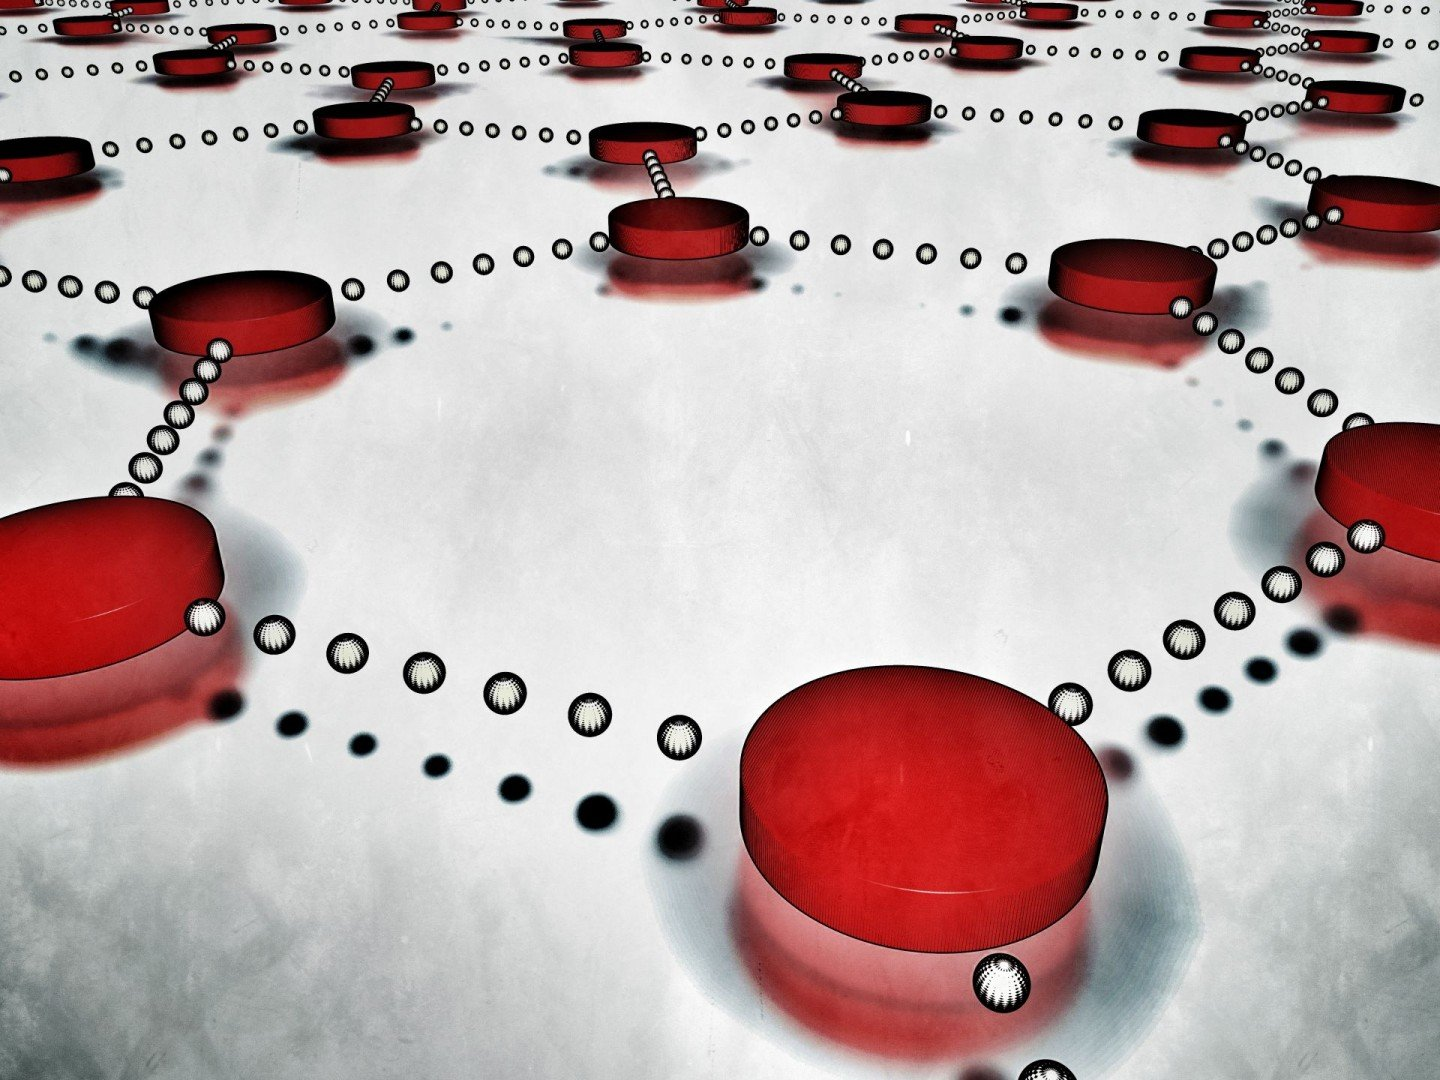 dots connecting